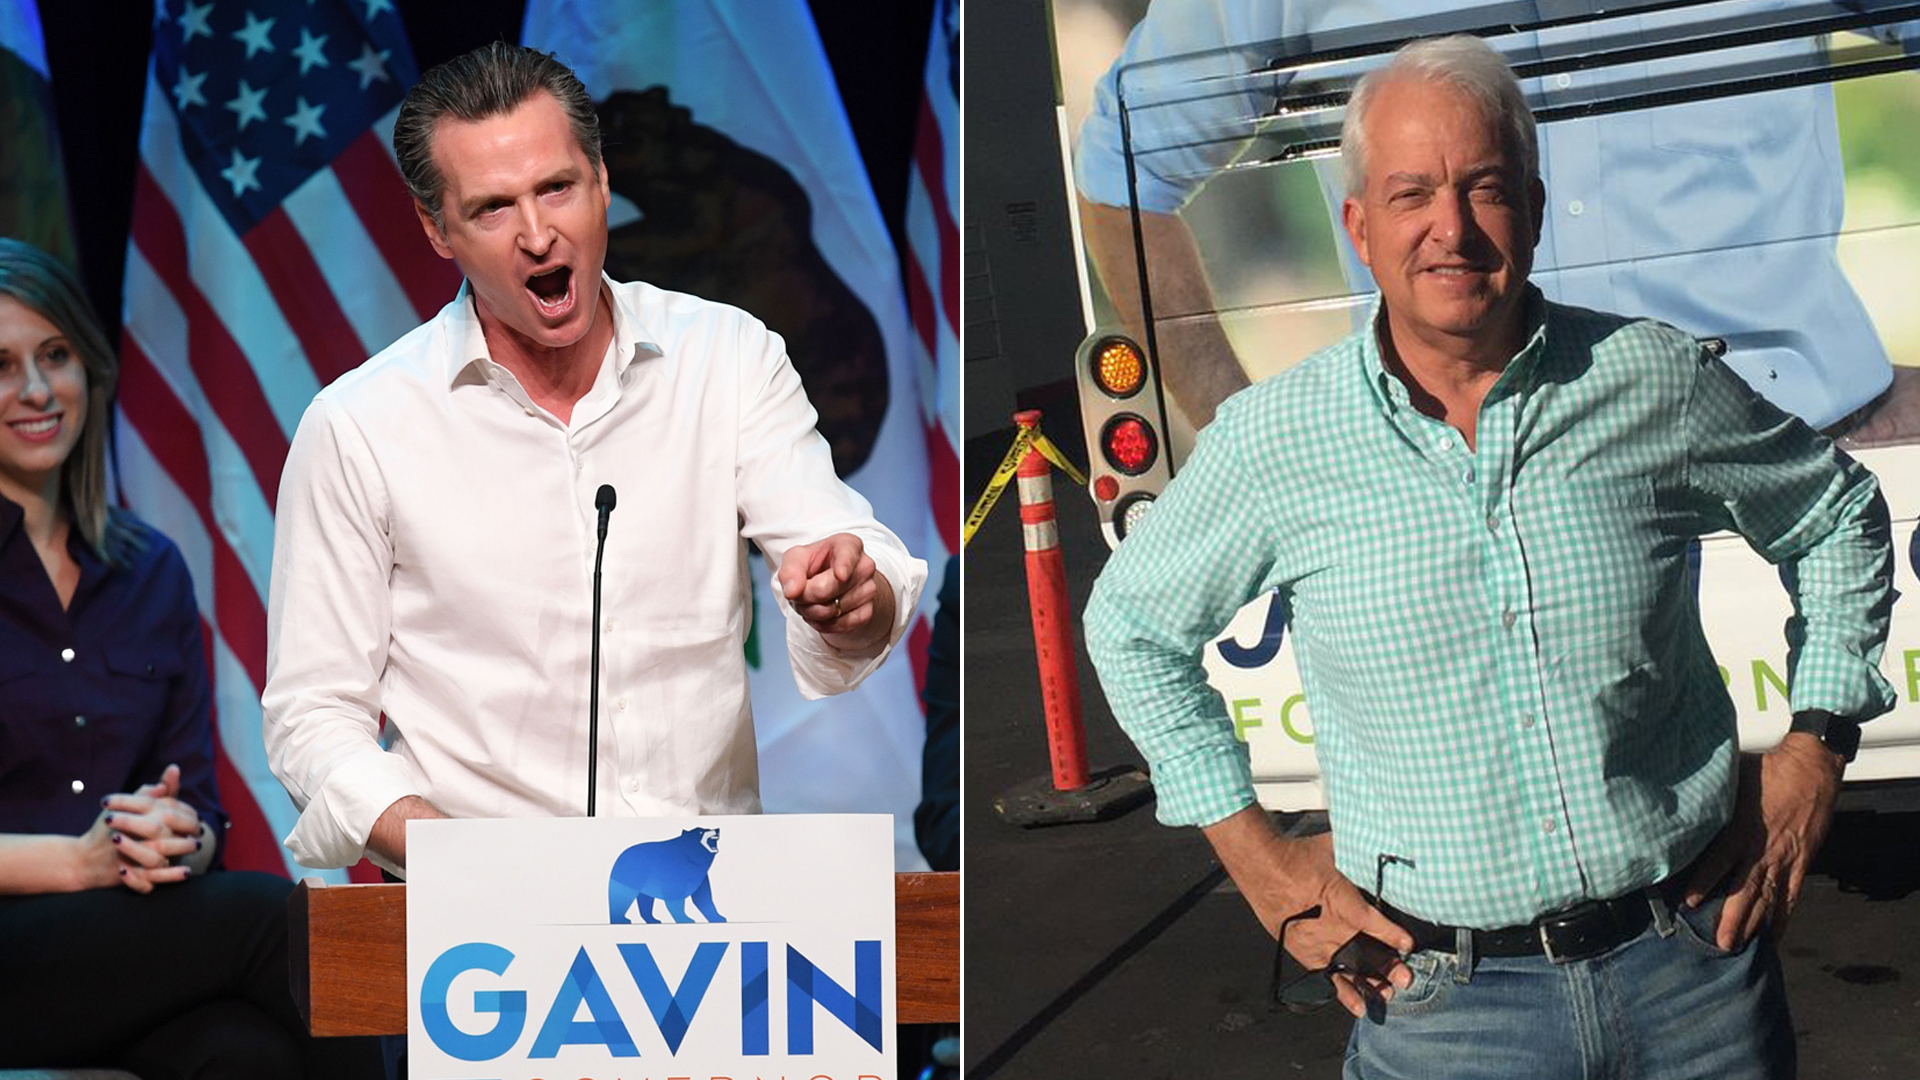 Gavin Newsom, left, campaigns in Santa Clarita on Nov. 3, 2018. John Cox, right, poses in front of a campaign bus in an image he posted to Twitter on Nov. 4, 2018. (Credit: MARK RALSTON/AFP/Getty Images; Twitter)